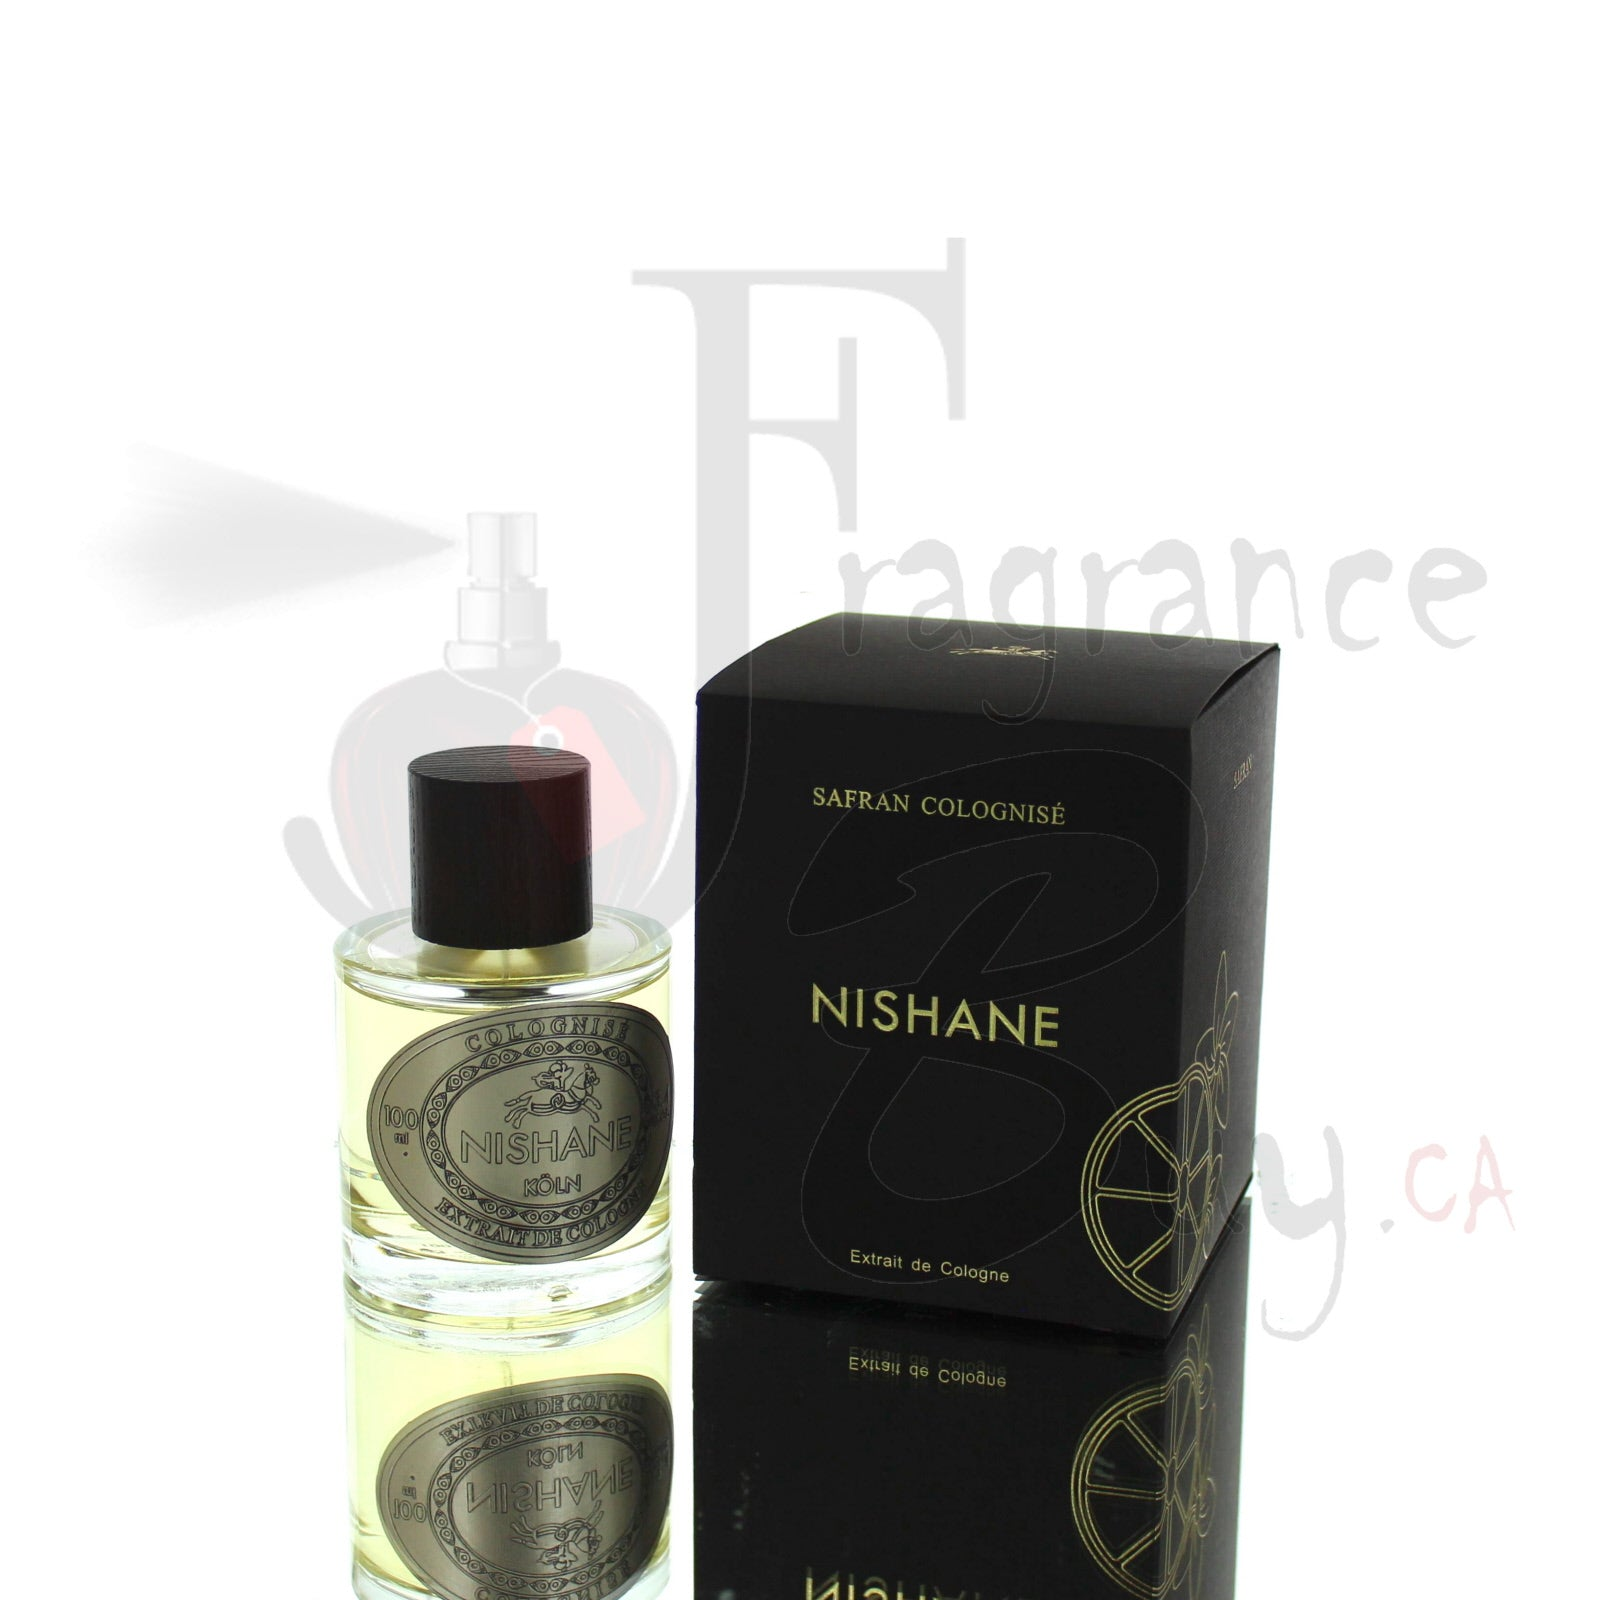 Nishane Safran Colognise For Man/Woman